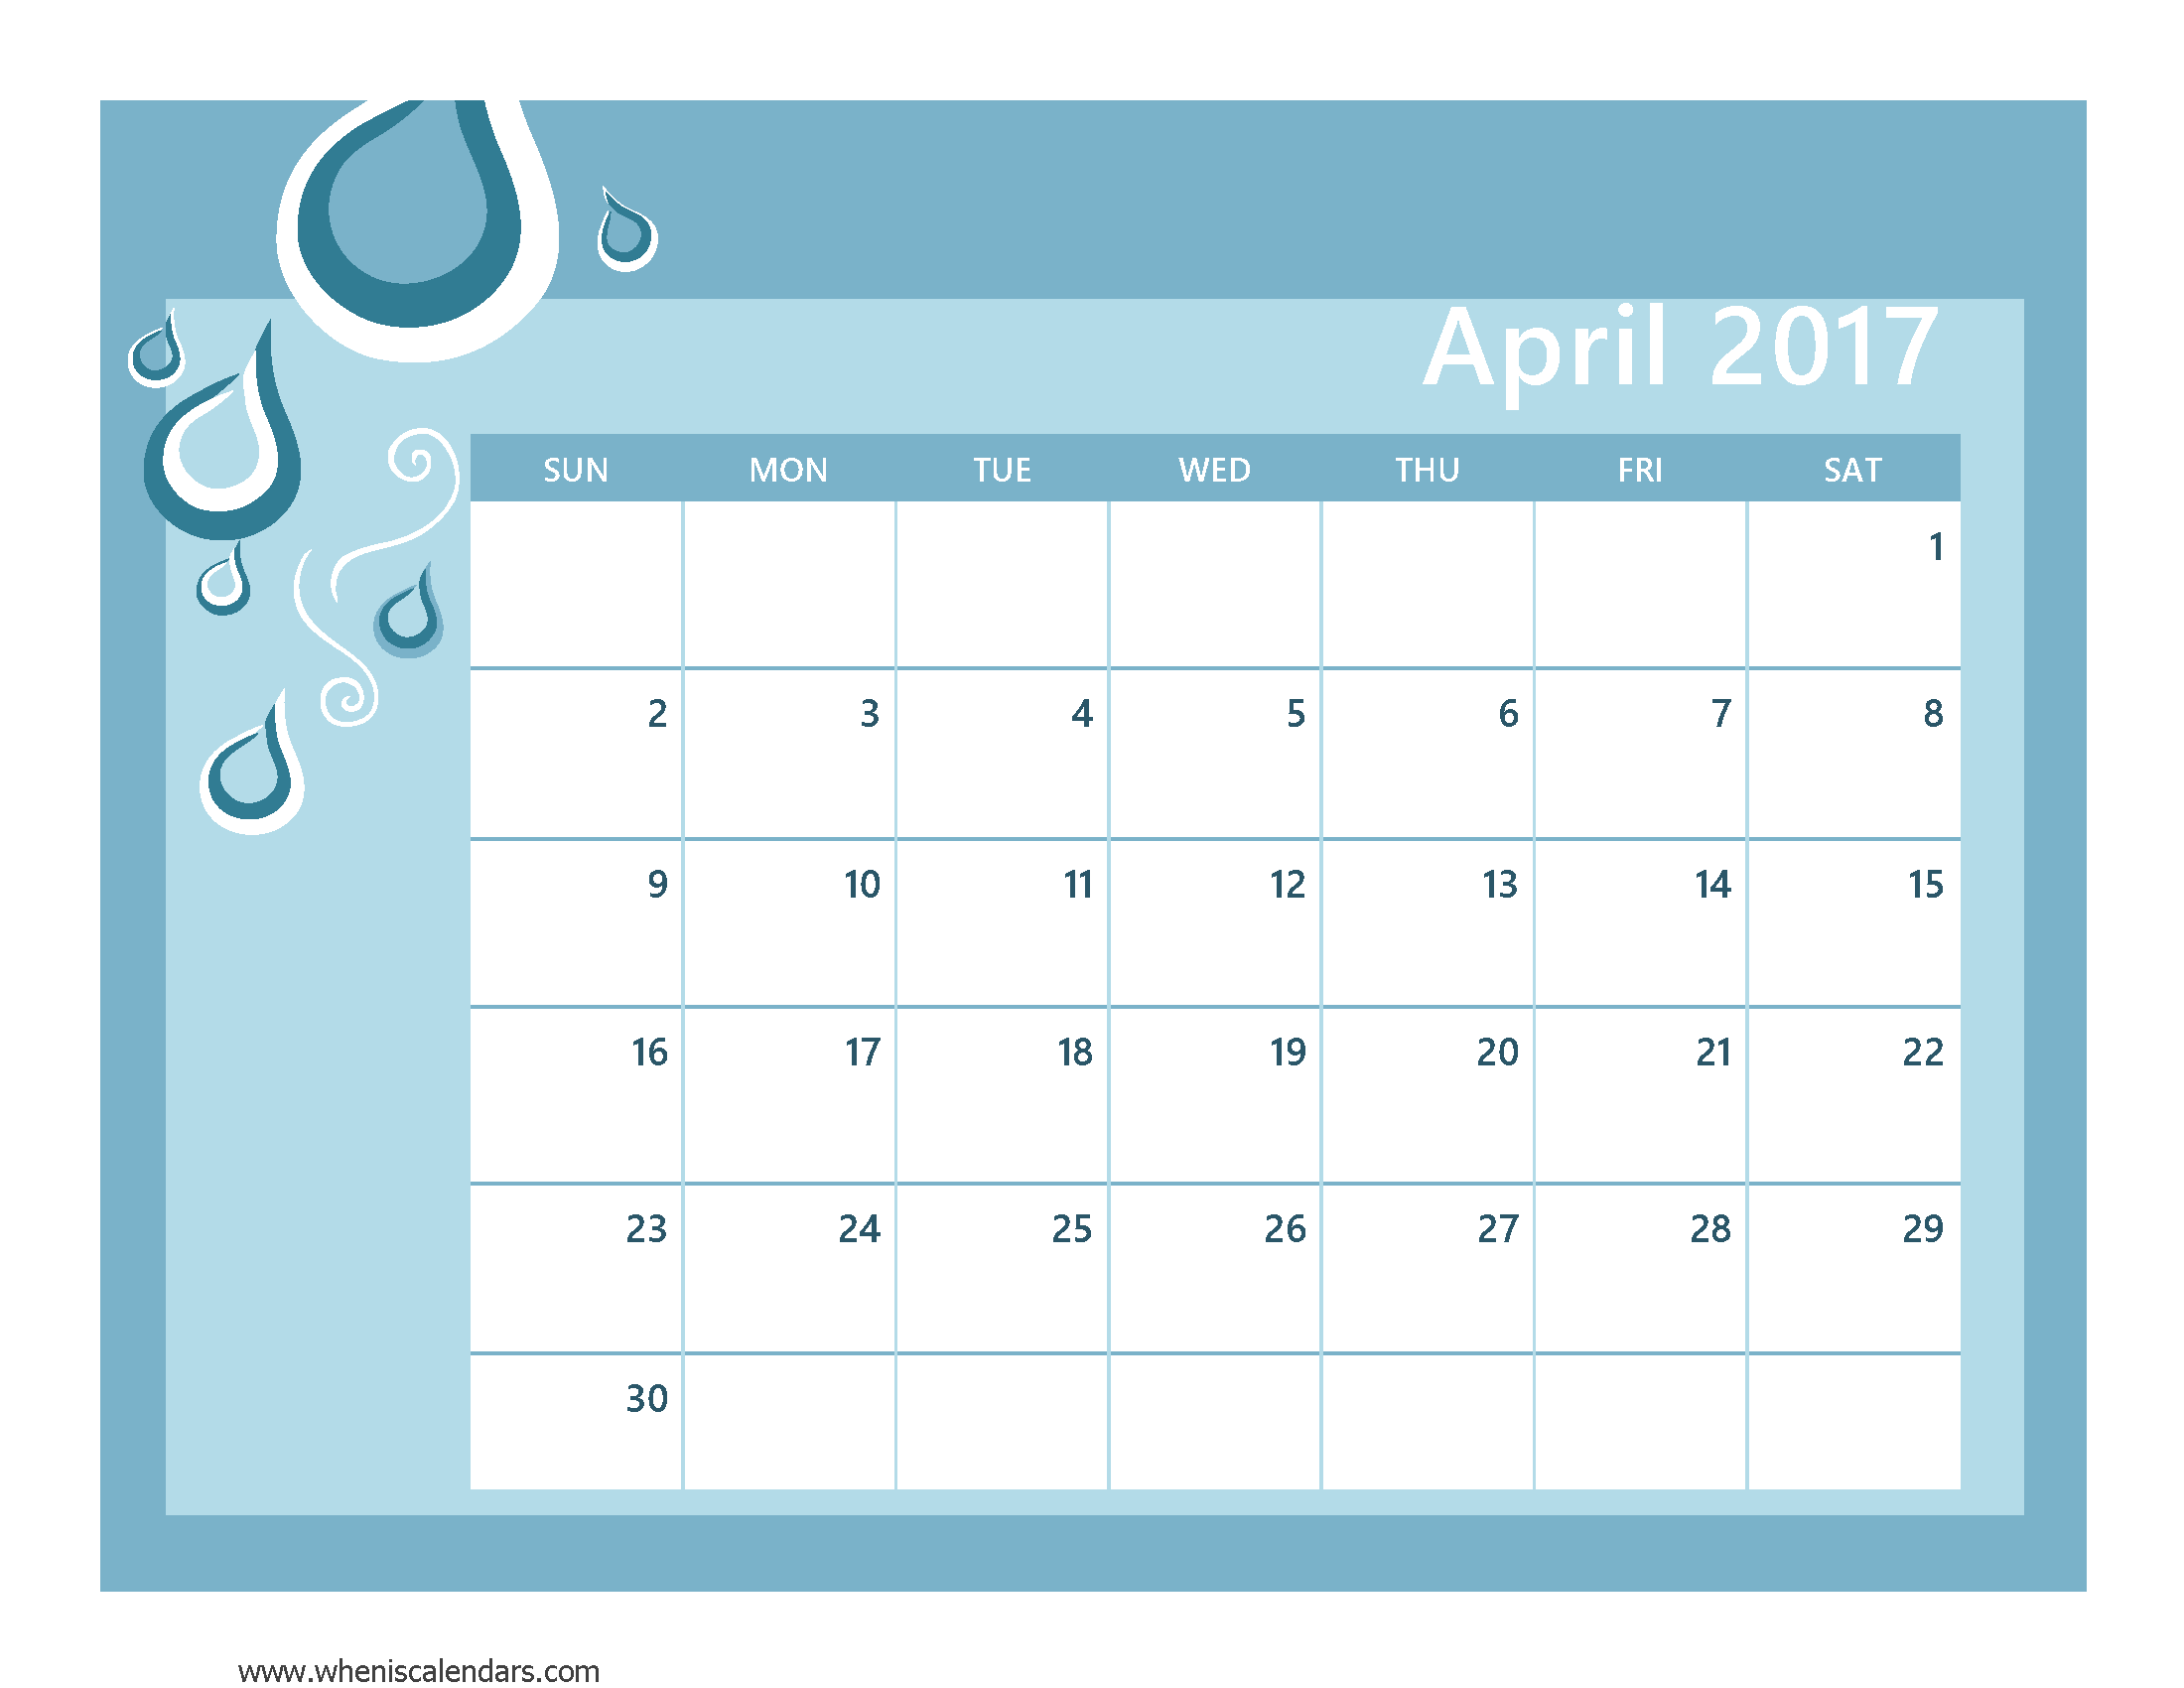 April 2017 Calendar Cute | weekly calendar template